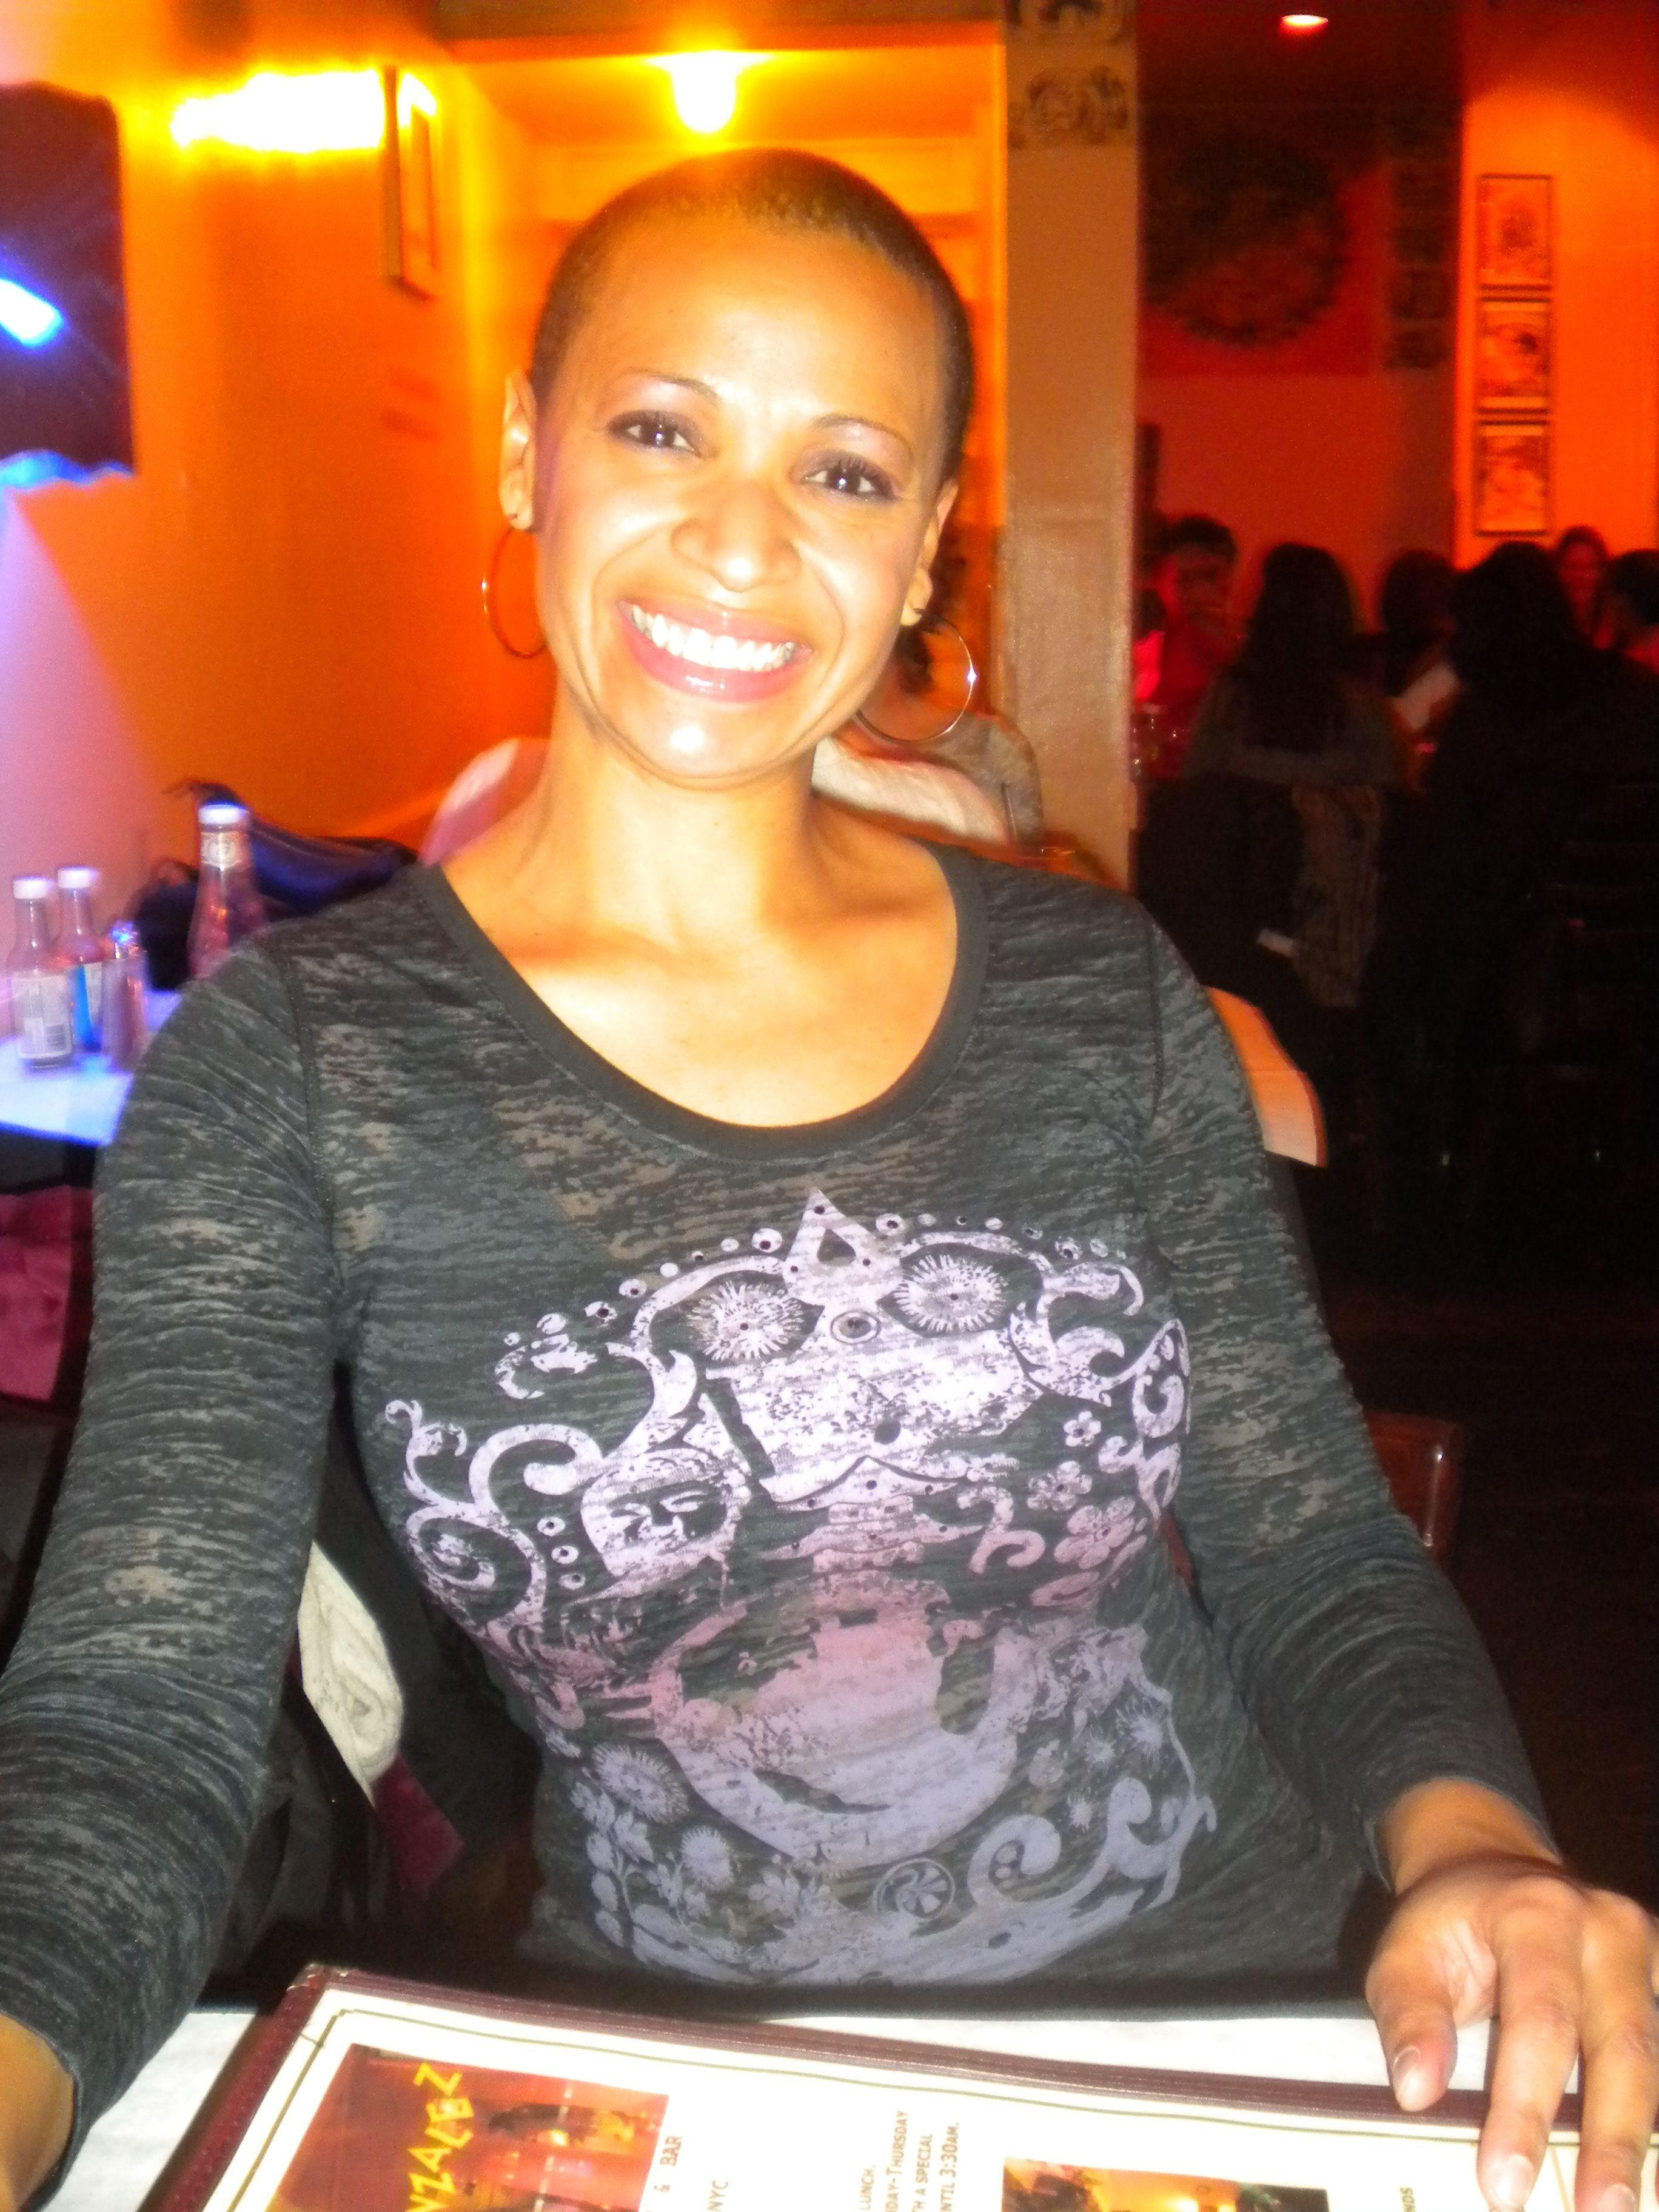 ellicott city single bbw women These are just some of the different kinds of meetup groups you can find near ellicott city  the single christians  towson area inquisitive women over 55 .